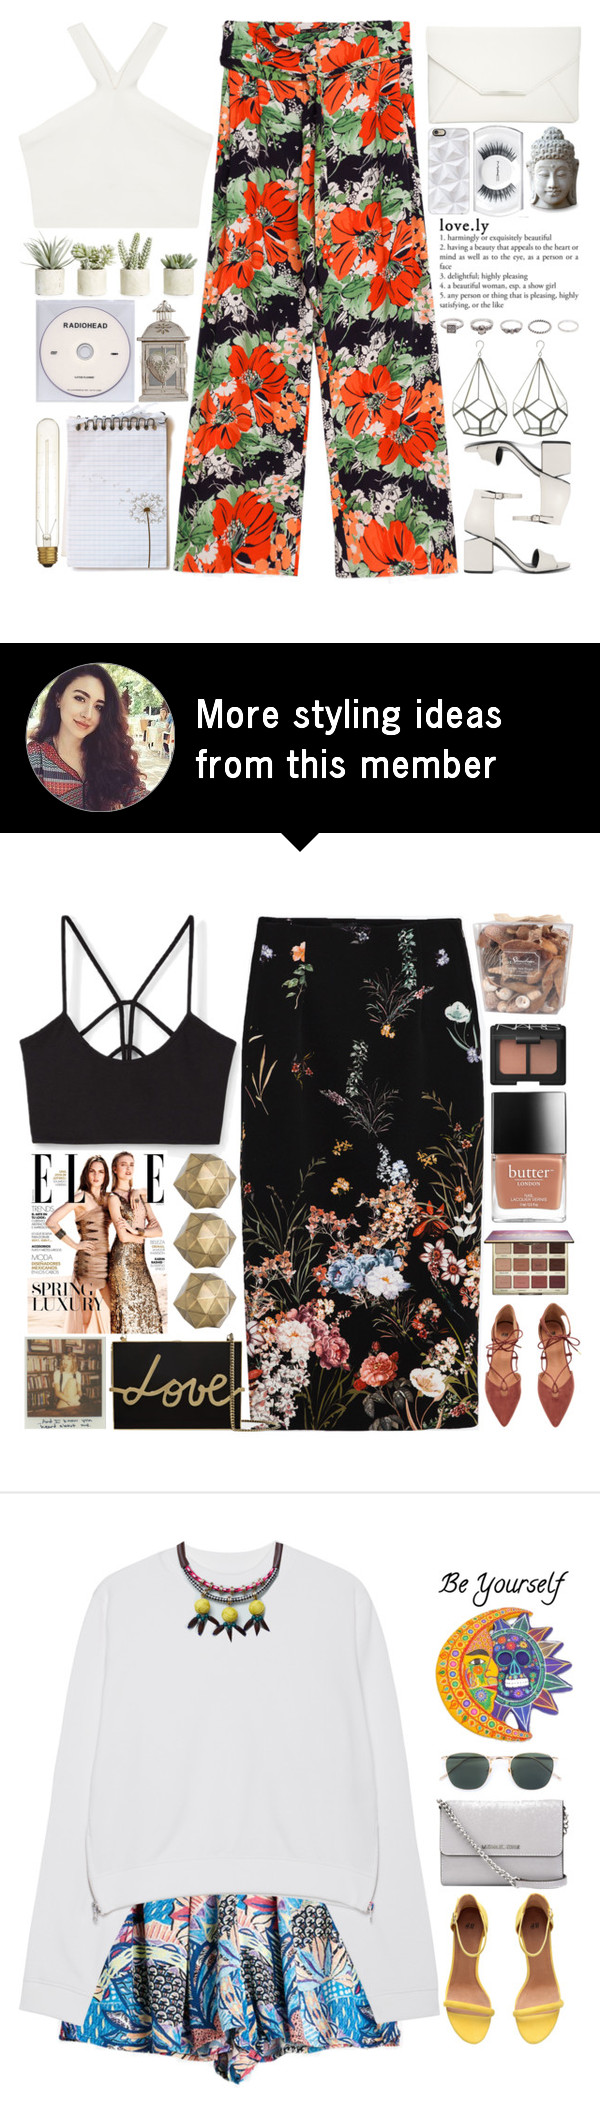 """love.ly"" by doga1 on Polyvore featuring BCBGMAXAZRIA, Style & Co., Allstate Floral, Alexander Wang, KEEP ME, BKE, Casetify, MAC Cosmetics, NOVICA and CB2"